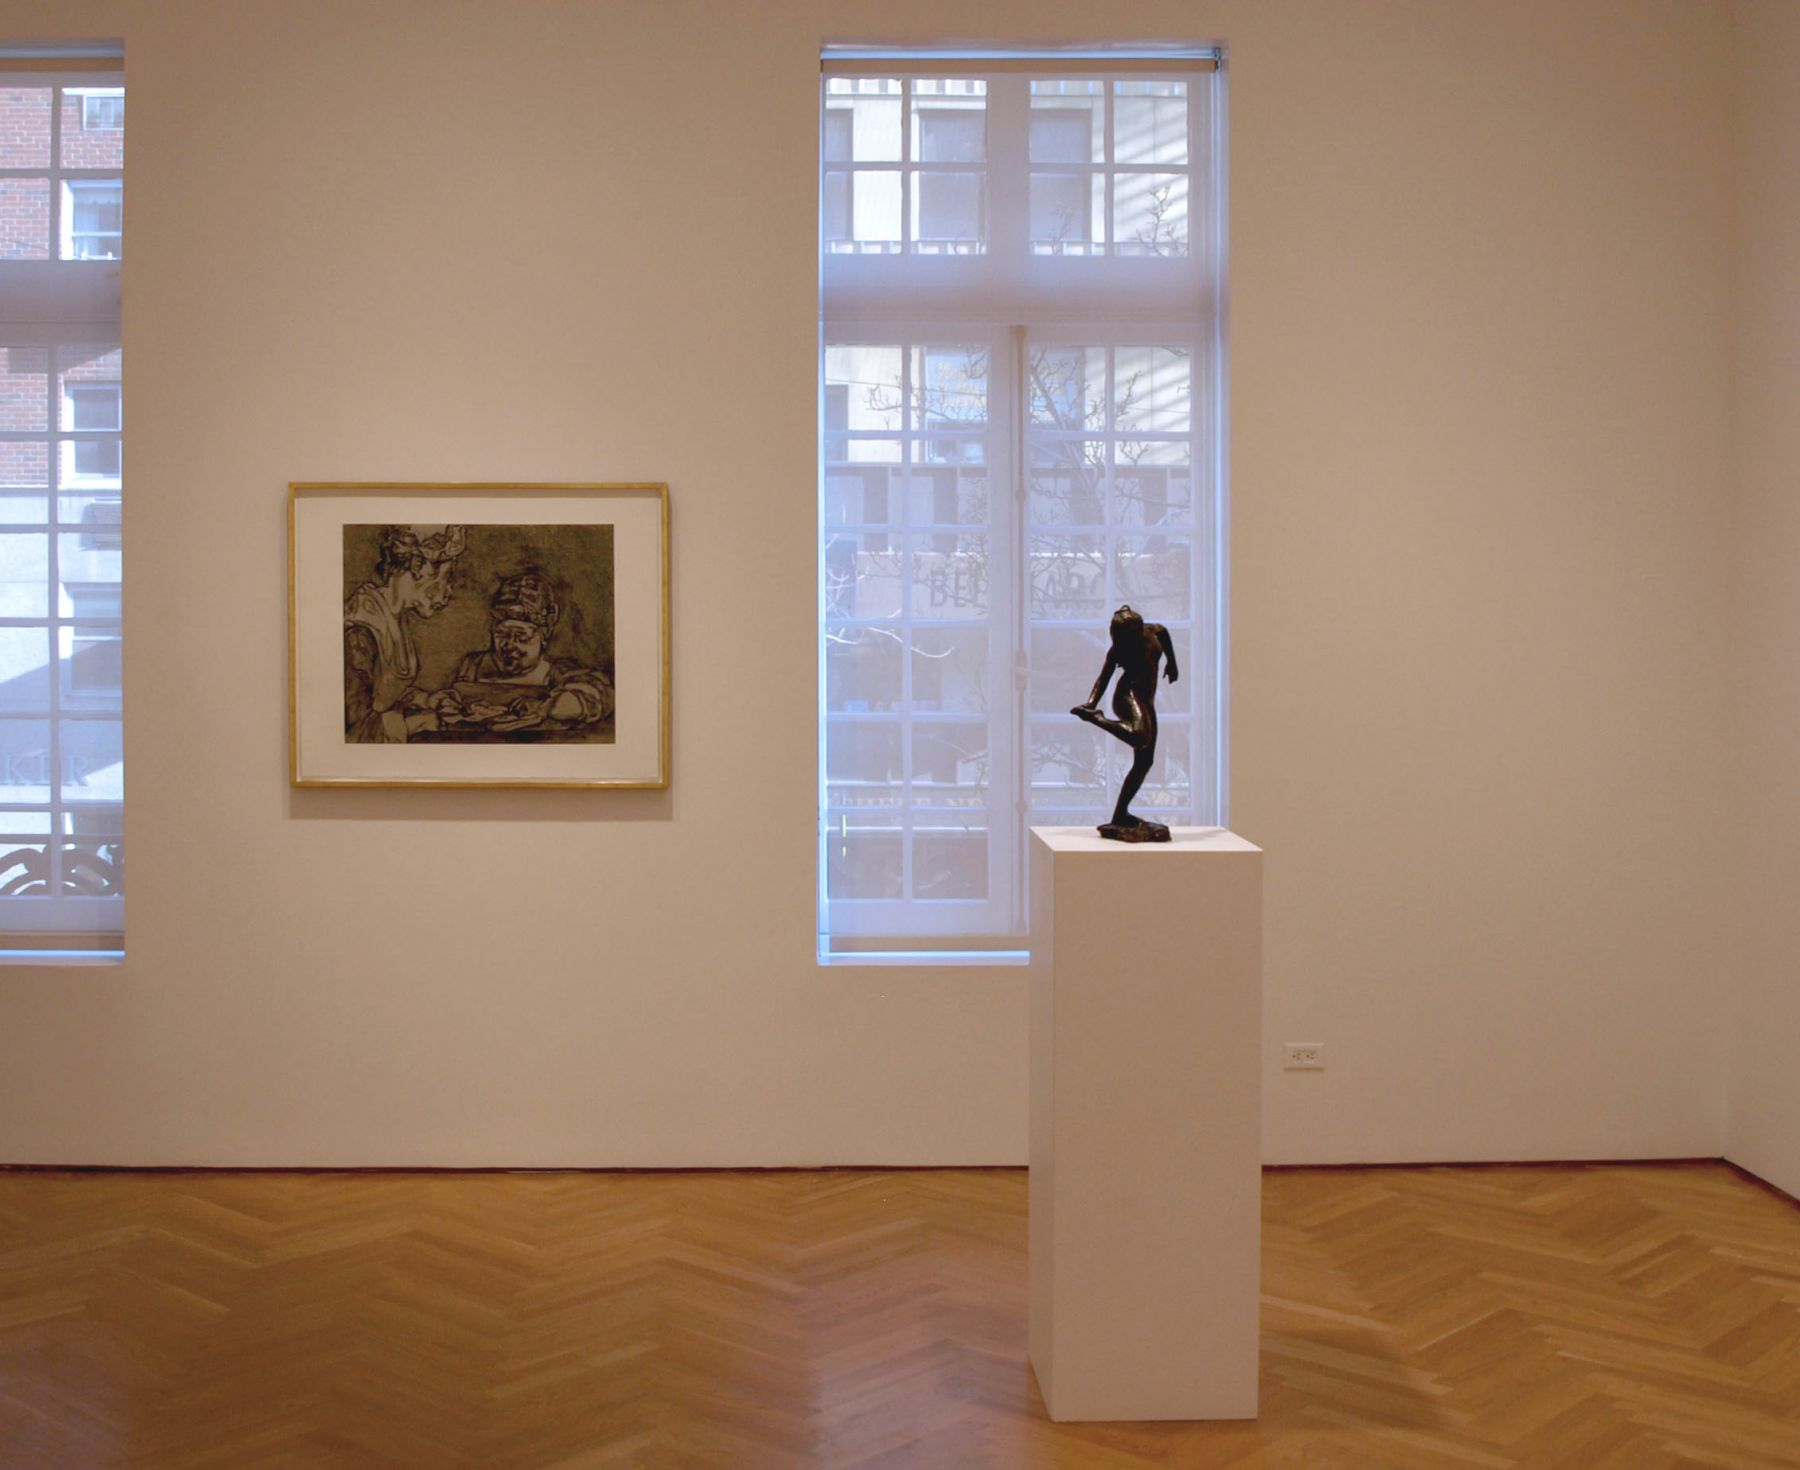 Lucian Freud and Sculpture